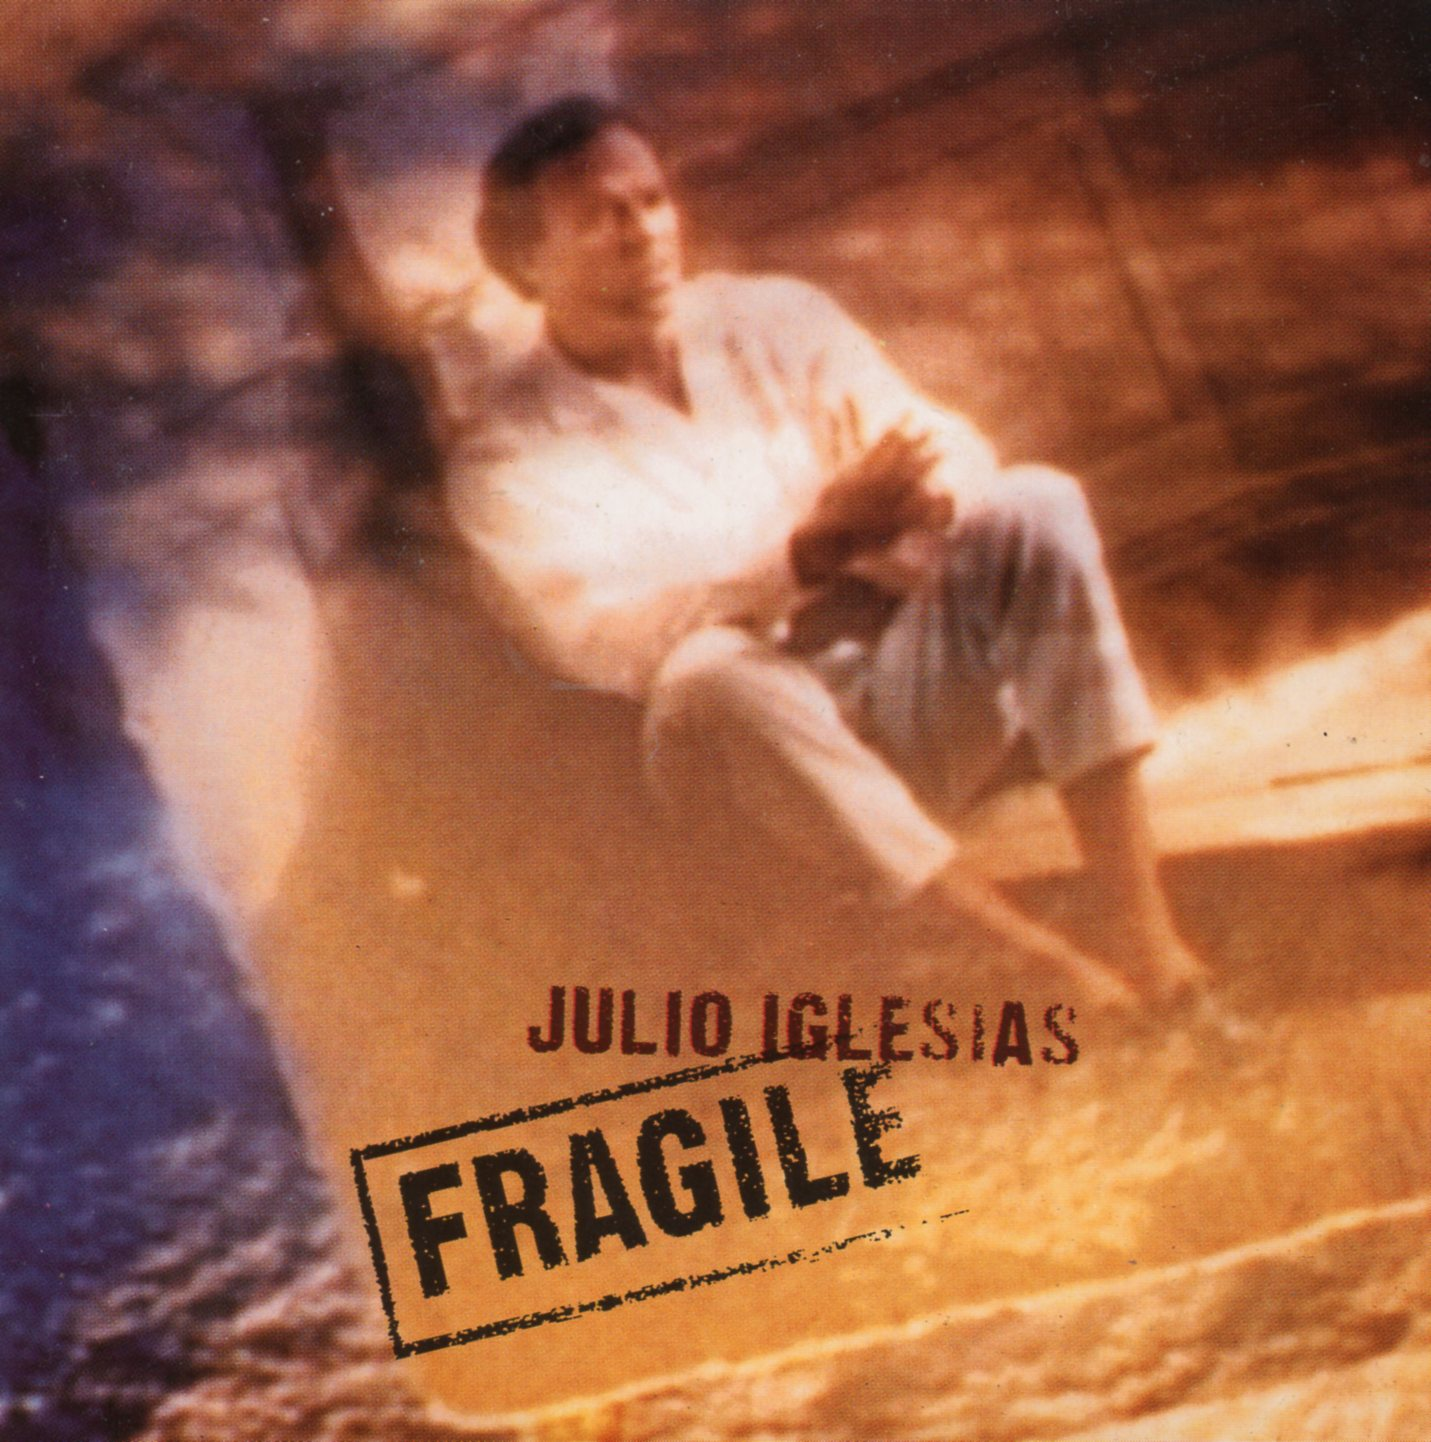 JULIO IGLESIAS - Fragile 2-track CARD SLEEVE - CD single